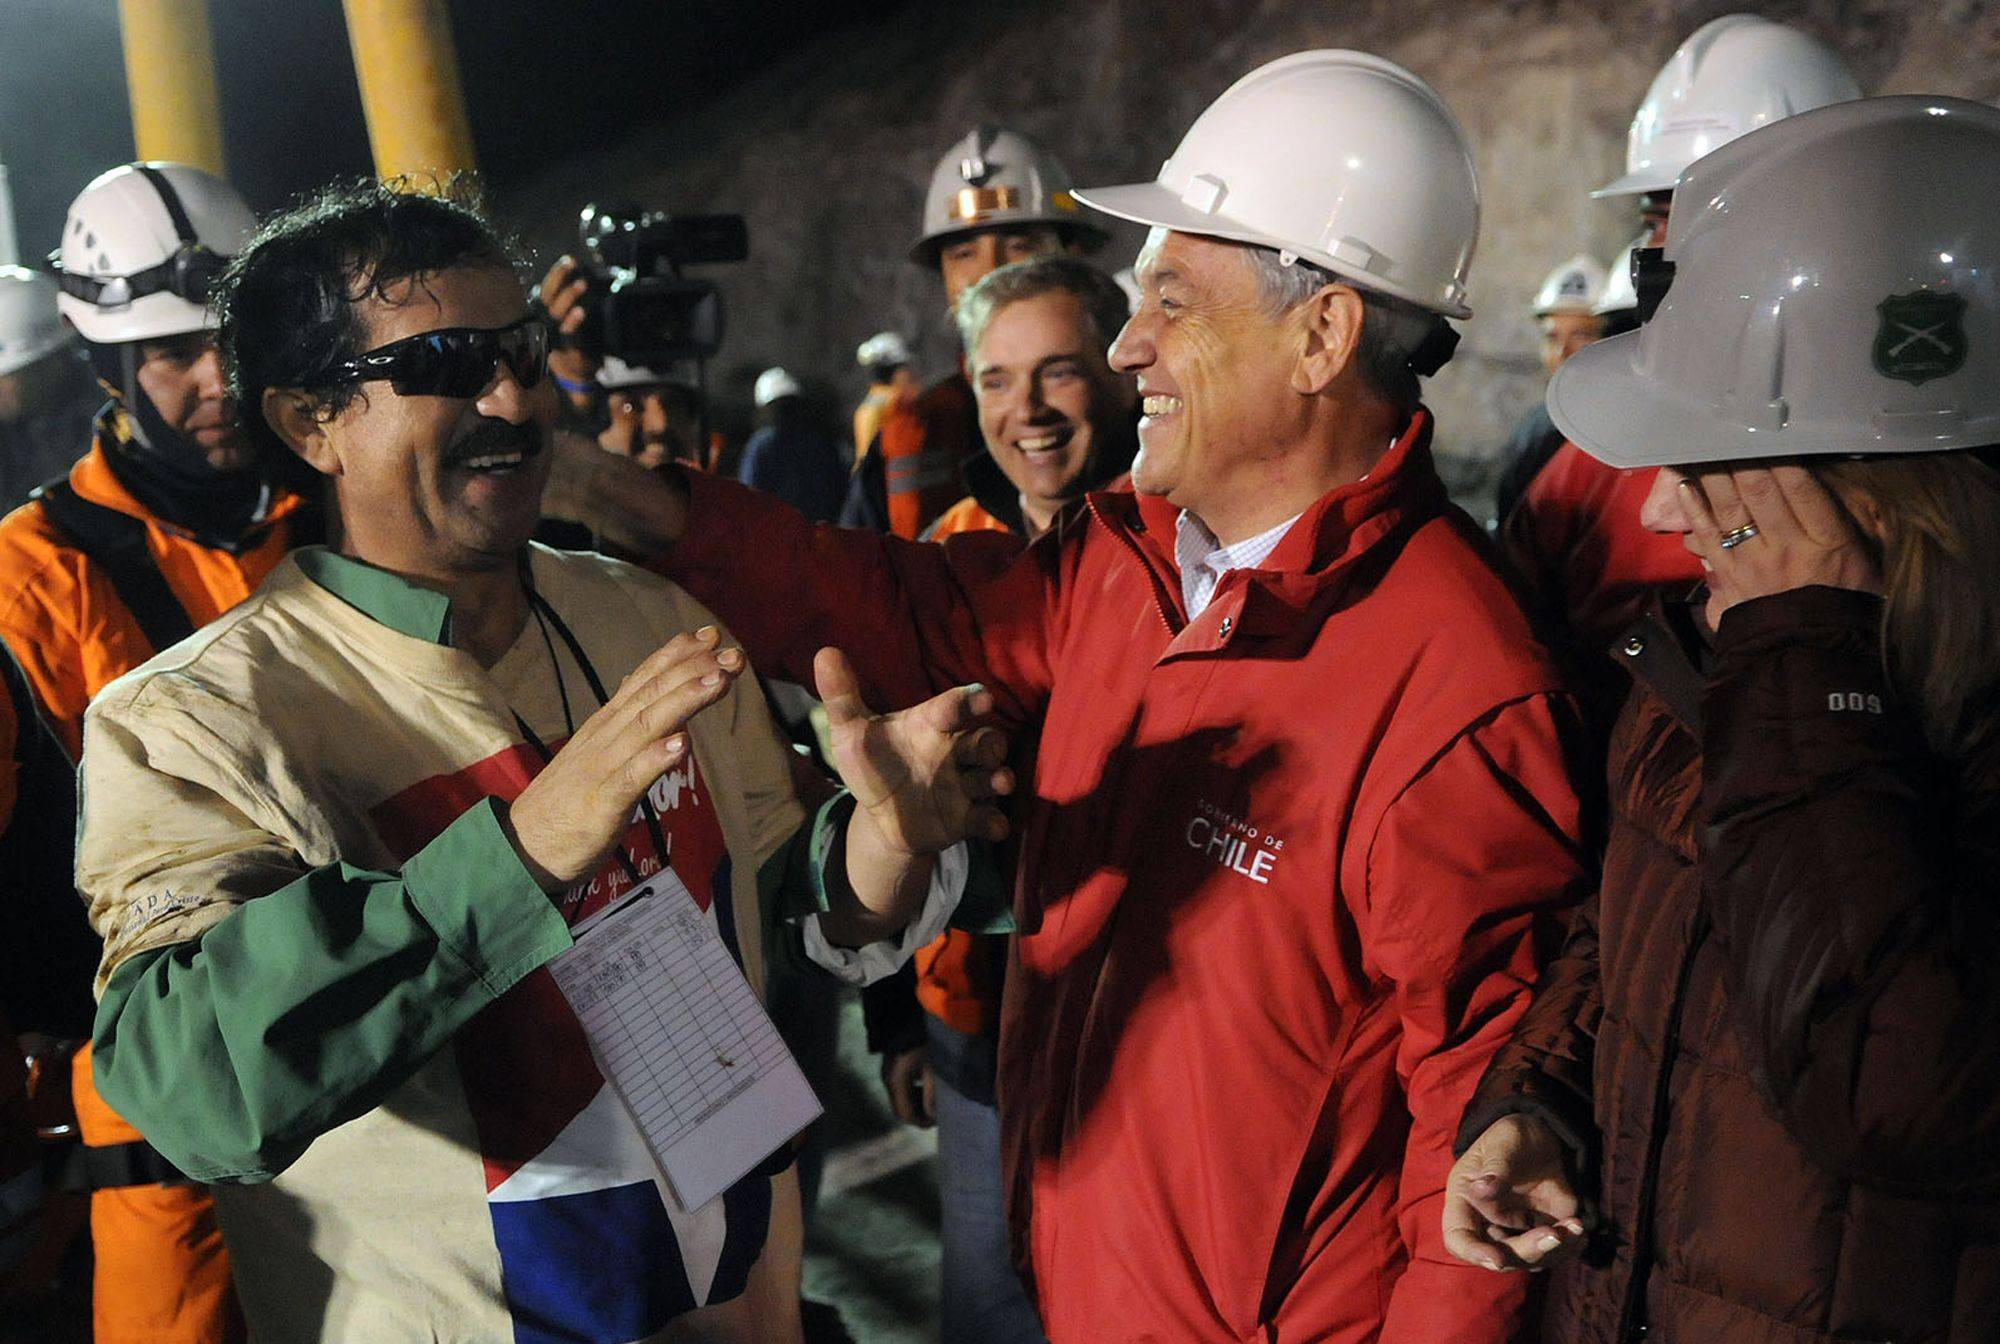 In this photo released by the Chilean presidential press office, miner Juan Illanes, left, greets Chile's President Sebastian Pinera after being rescued from the collapsed San Jose gold and copper mine where he was trapped with 32 other miners for over two months near Copiapo, Chile, early Wednesday Oct. 13, 2010.